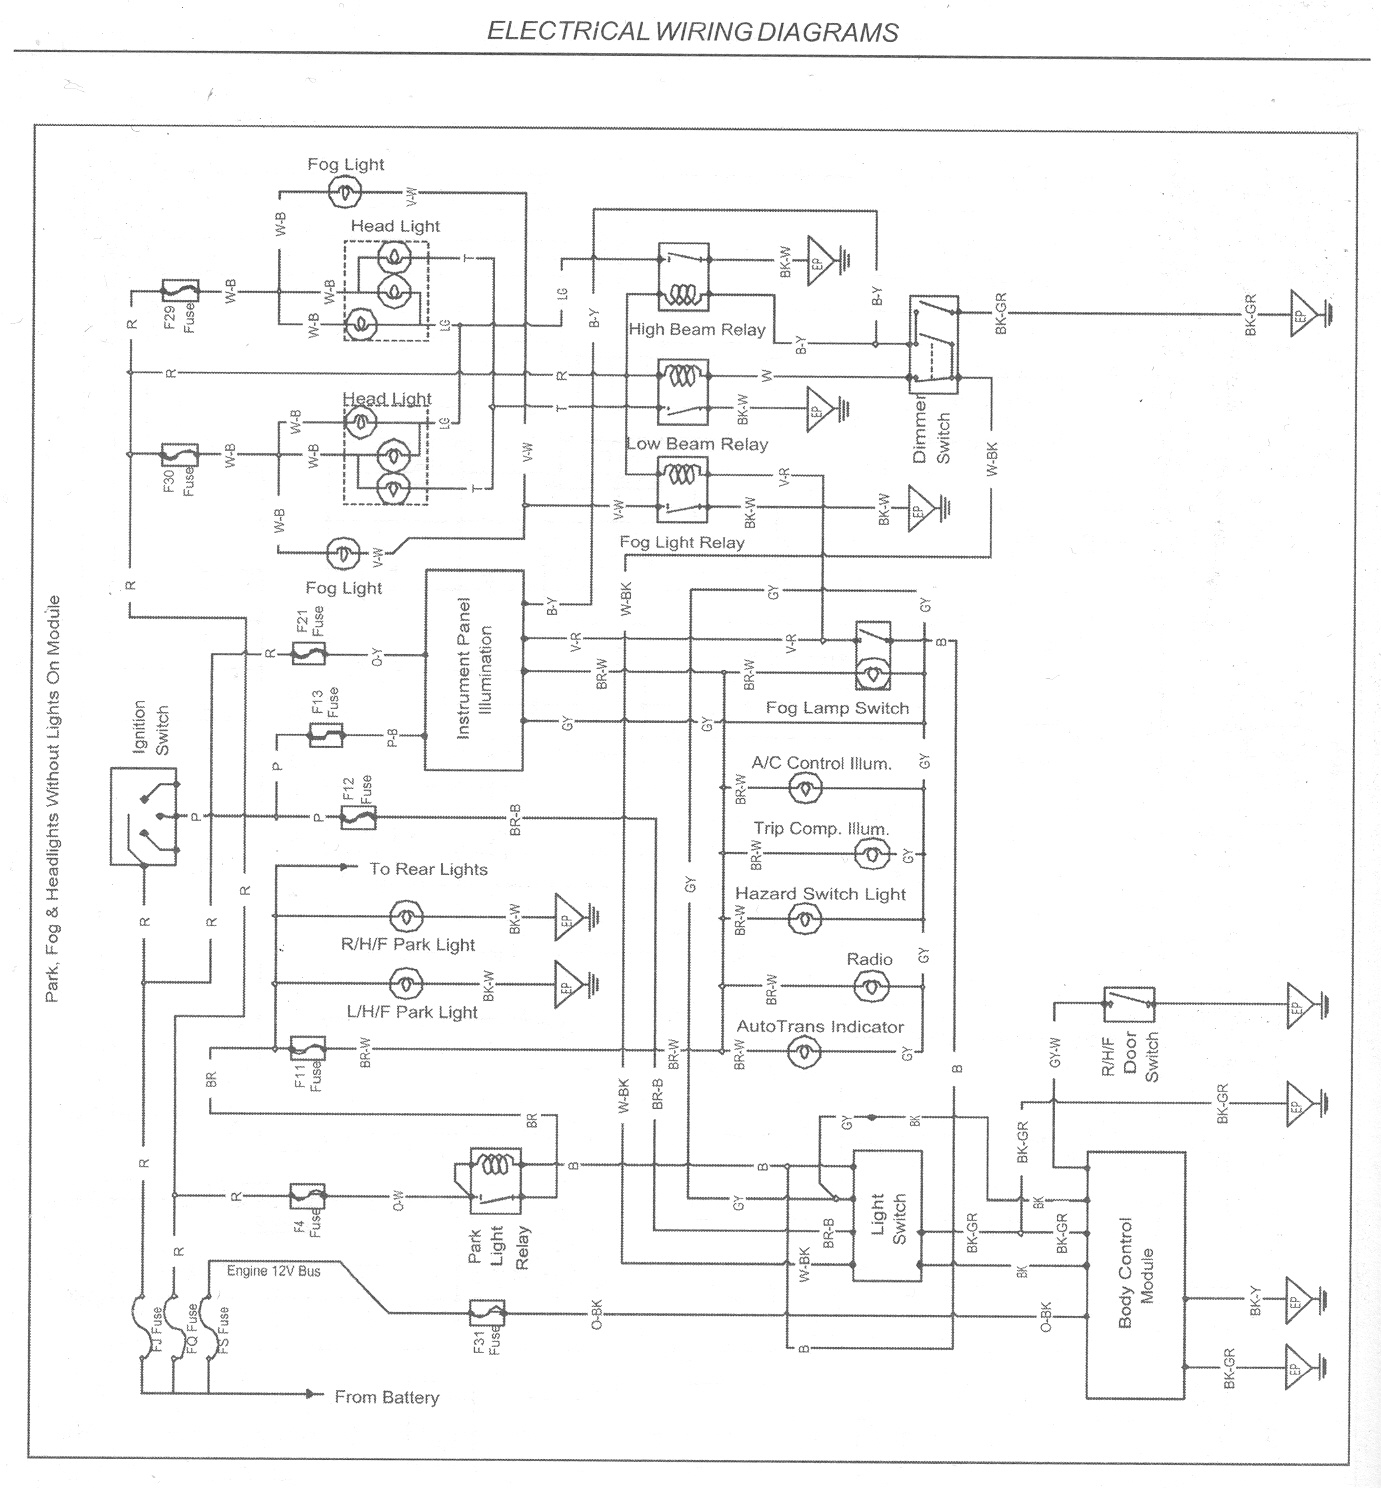 Headlight Switch Wiring Diagram? Just Commodores